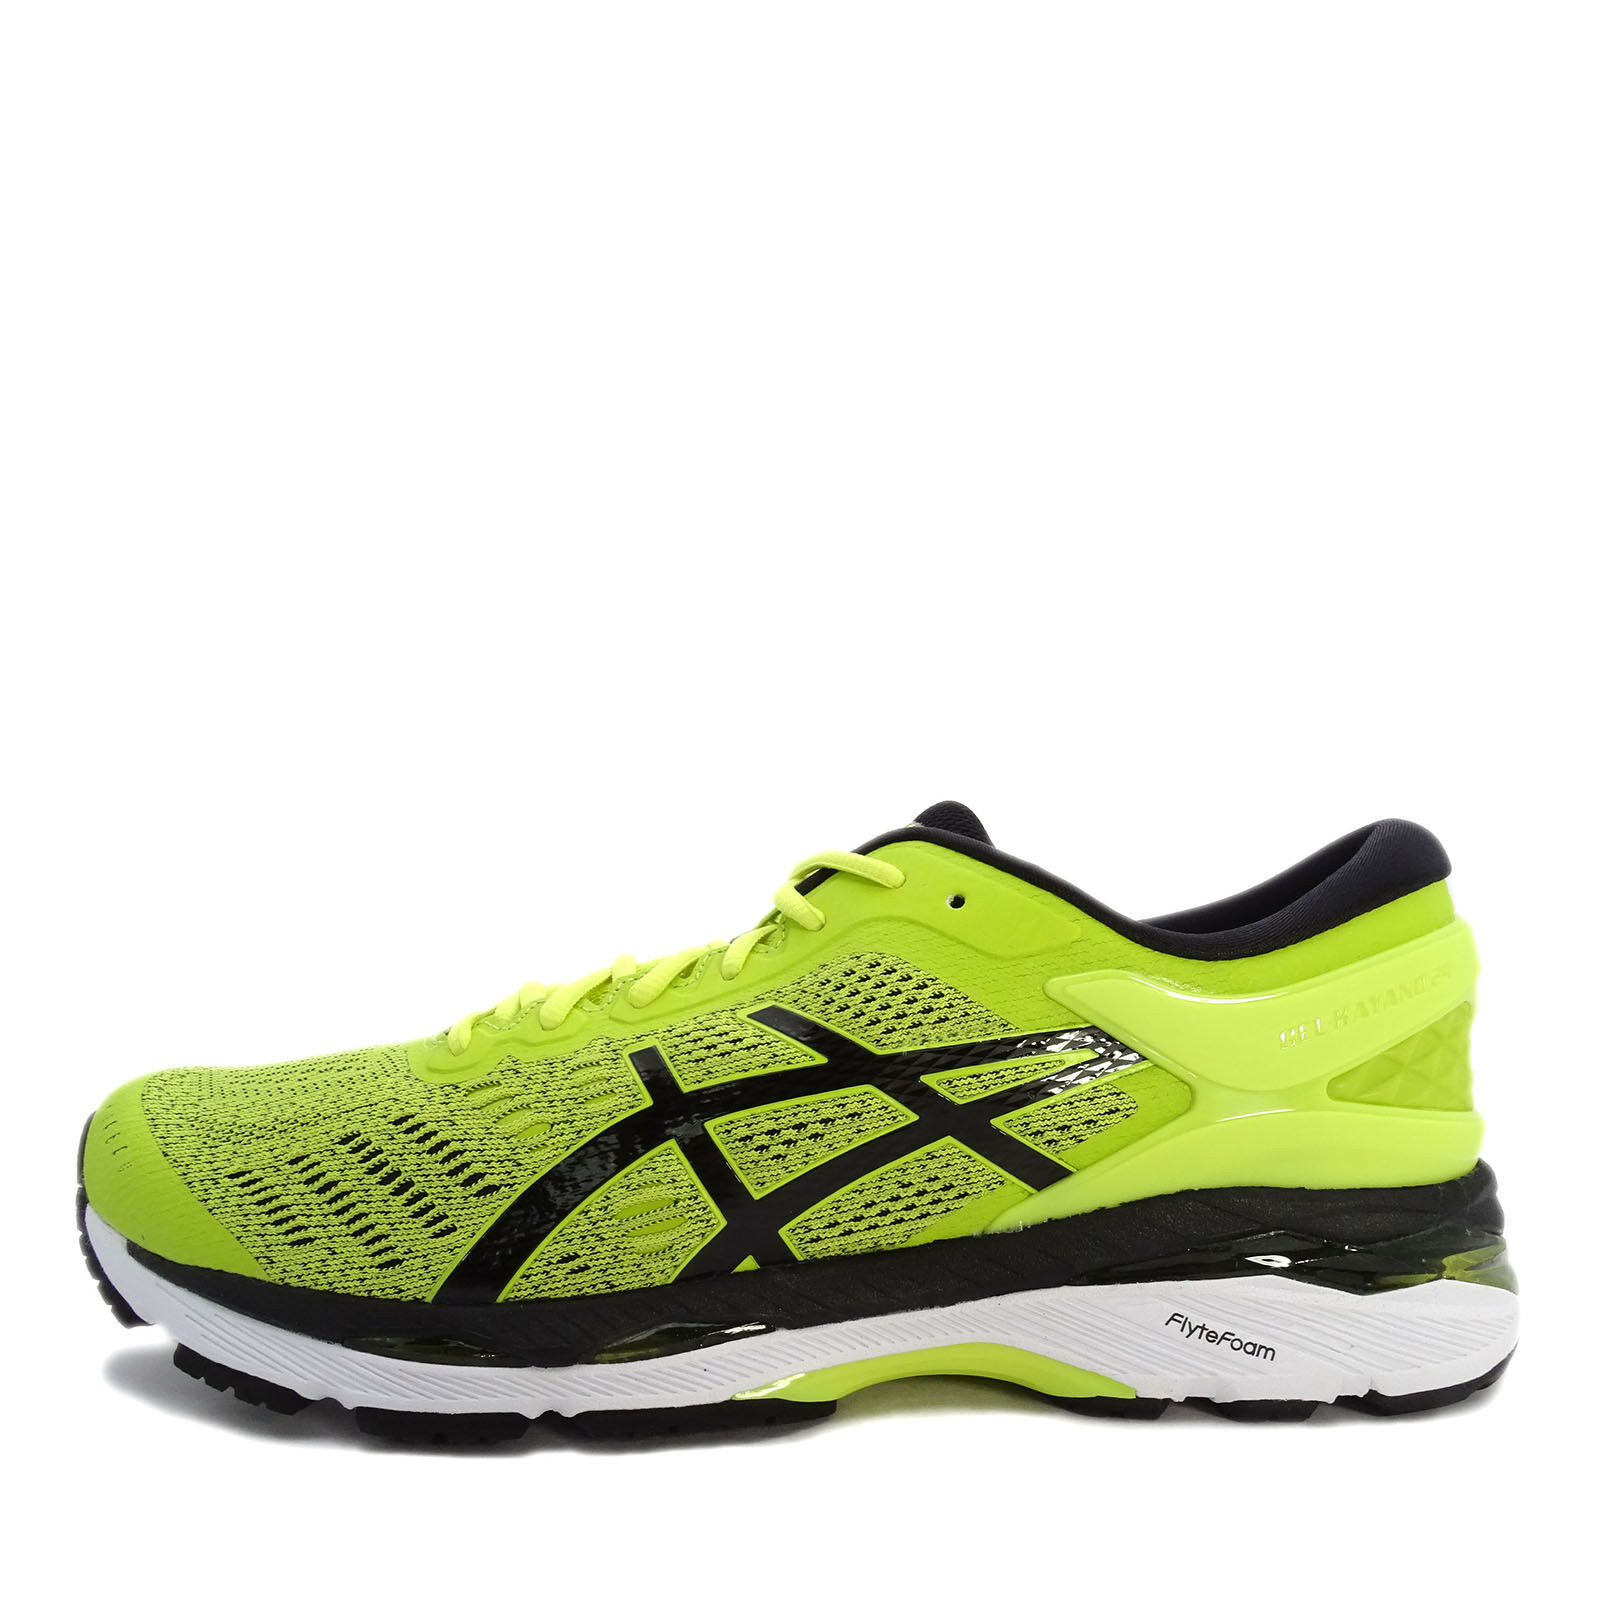 Asics GEL-Kayano 24 [T749N-8990] Men Running Shoes Sulphur/Black